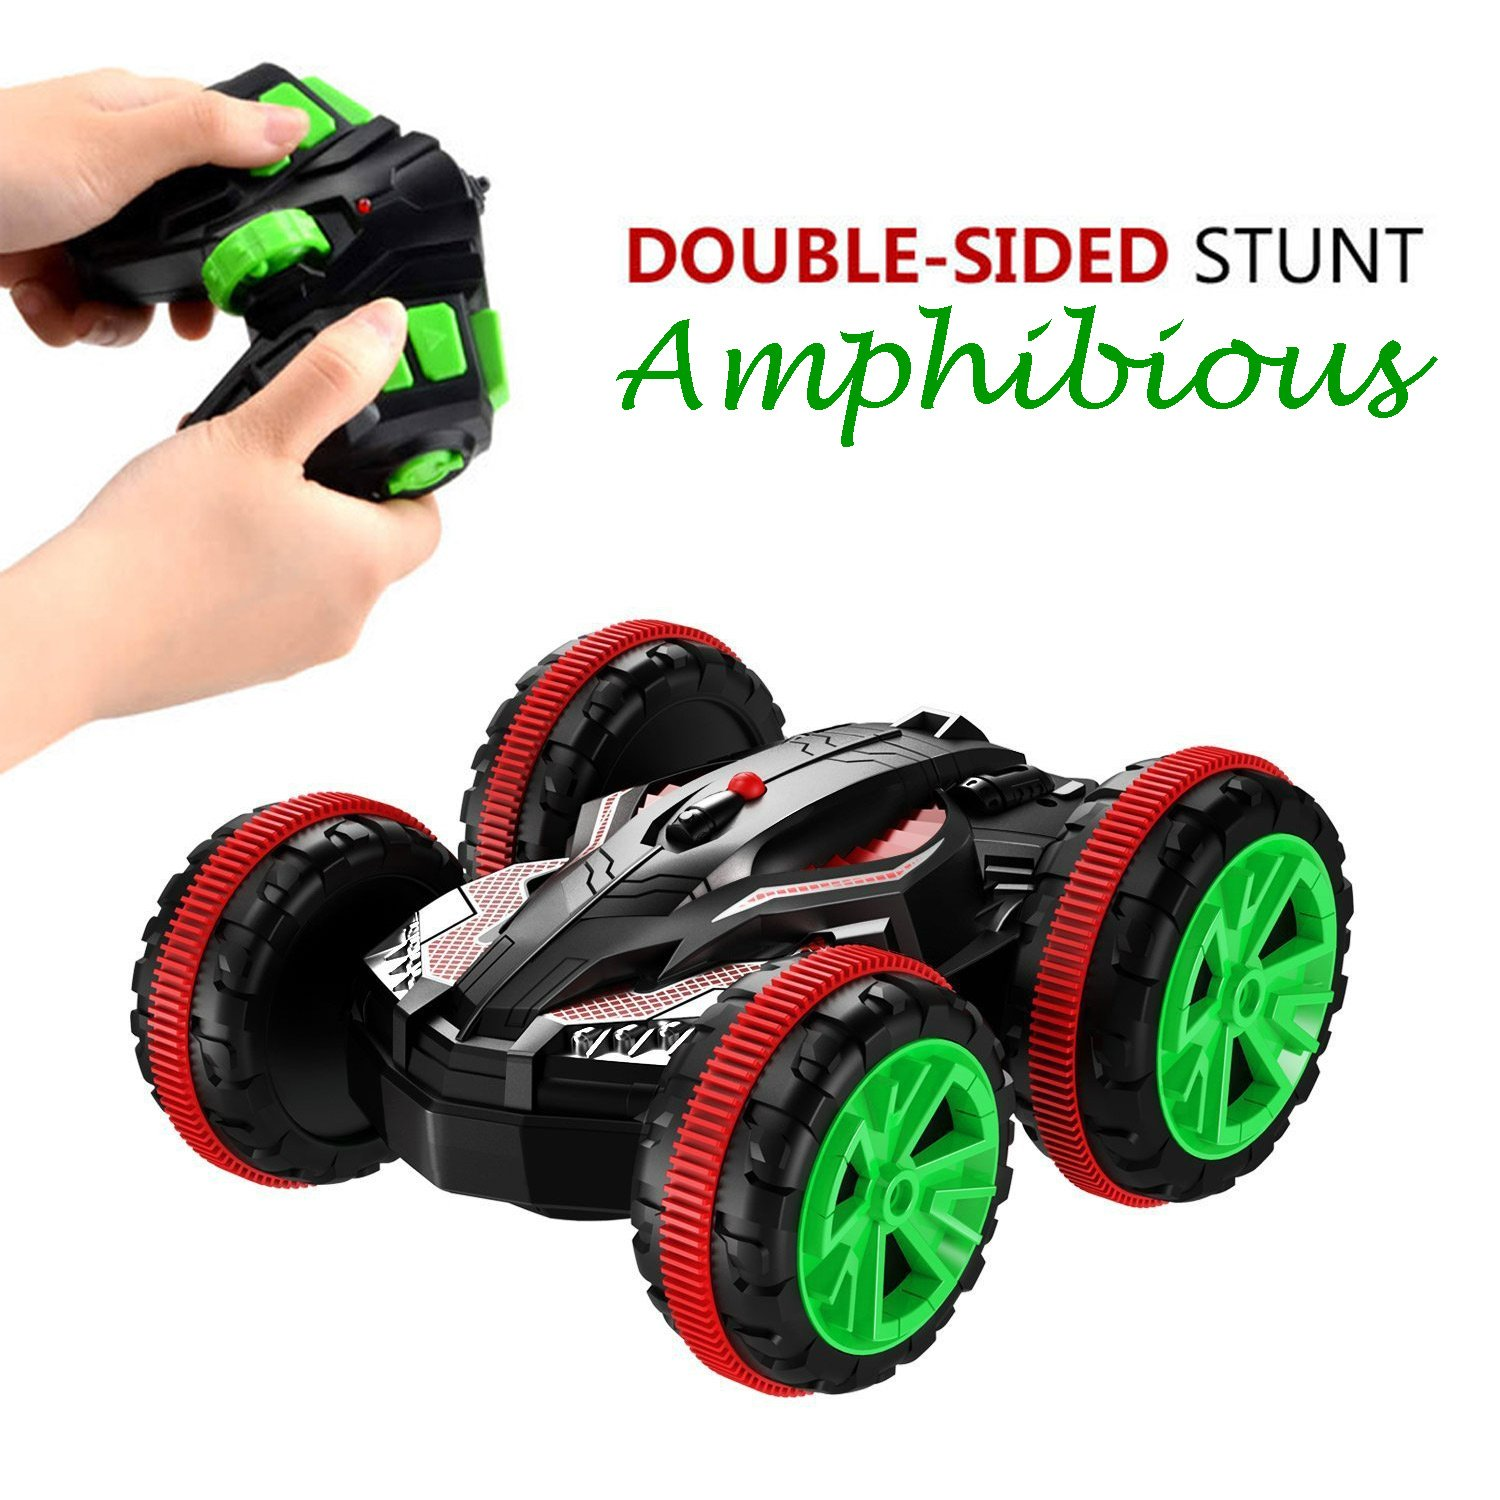 Top 10 Best RC Cars for Kids Reviews in 2020 8